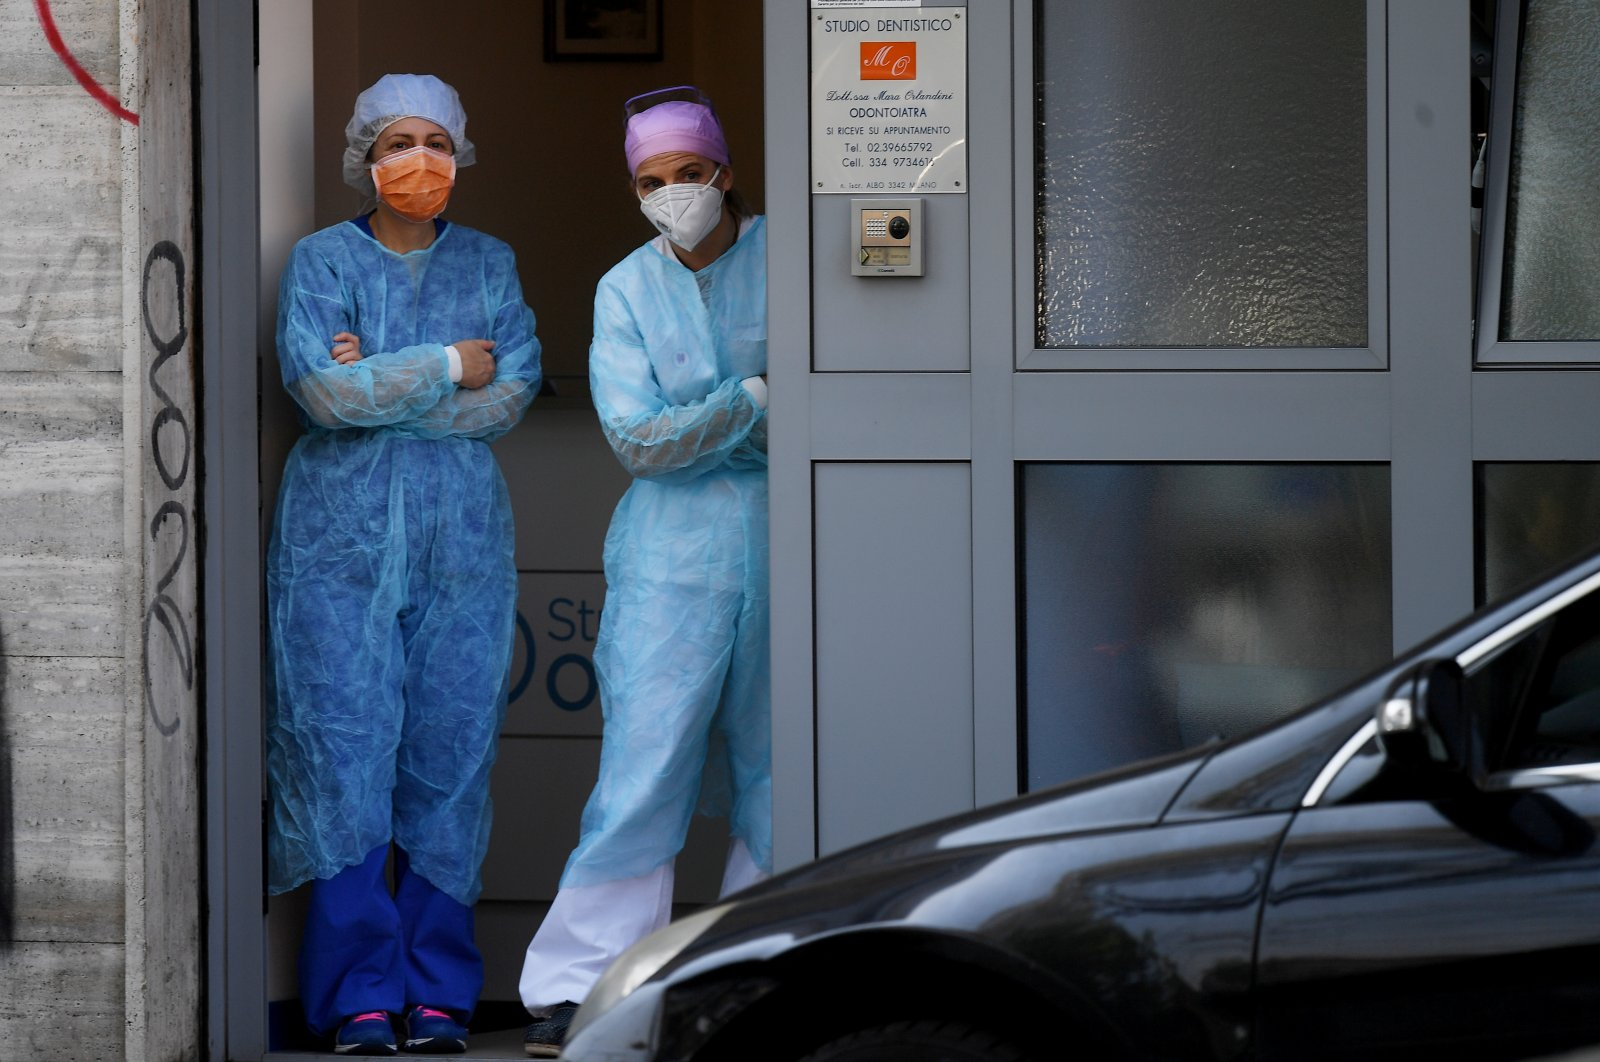 Dental staff look out of a doorway after a group who were putting red banners on memorial plaques dedicated to Italian partisans on Liberation Day following the outbreak of the coronavirus disease (COVID-19) in Milan, Italy, April 25, 2020. (Reuters Photo)